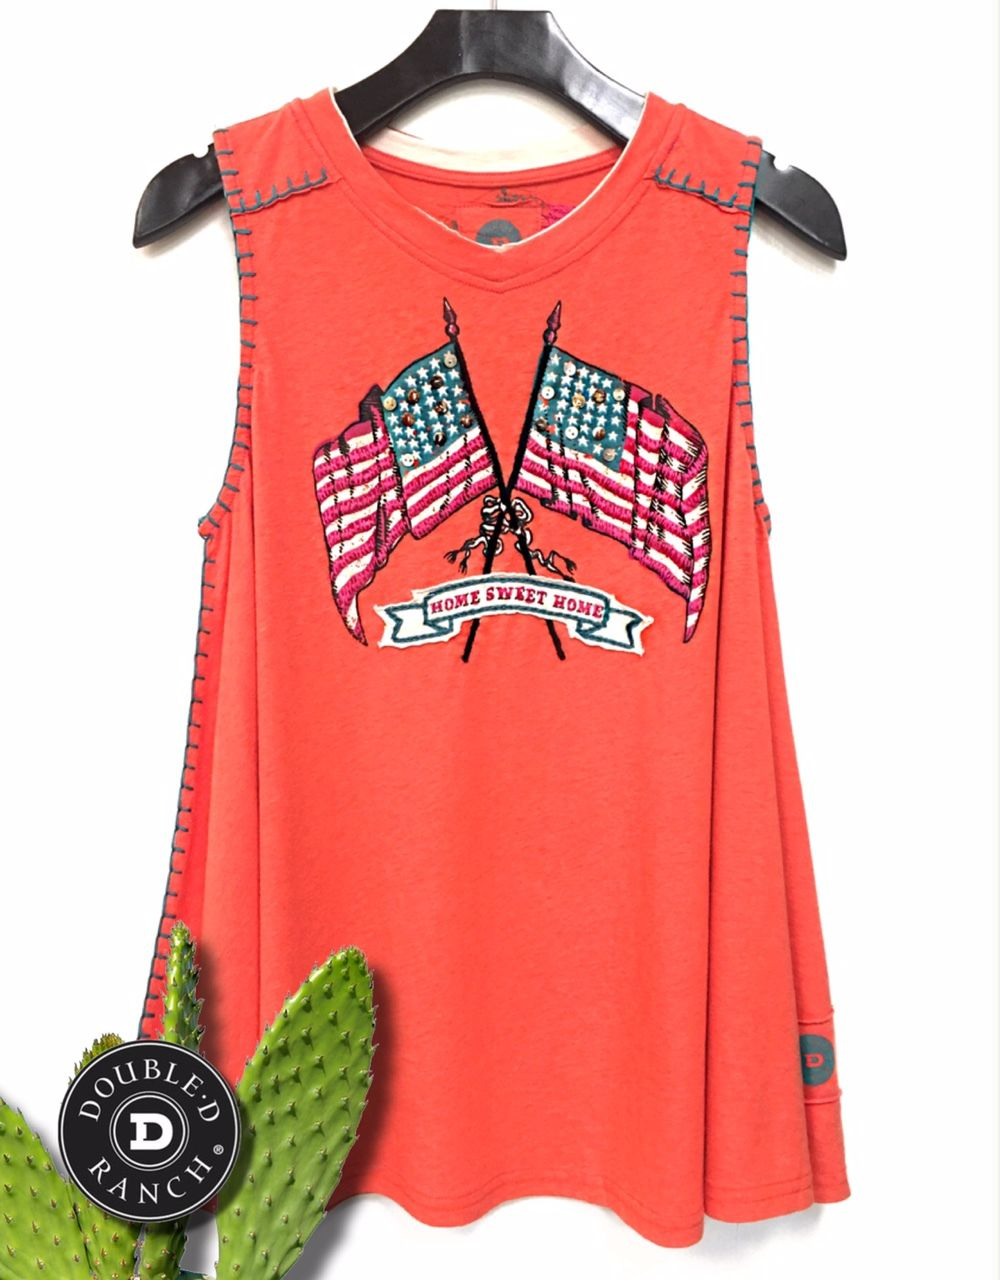 Double D Ranch Home Tank in Apricot - Dusty Diamonds Boutique